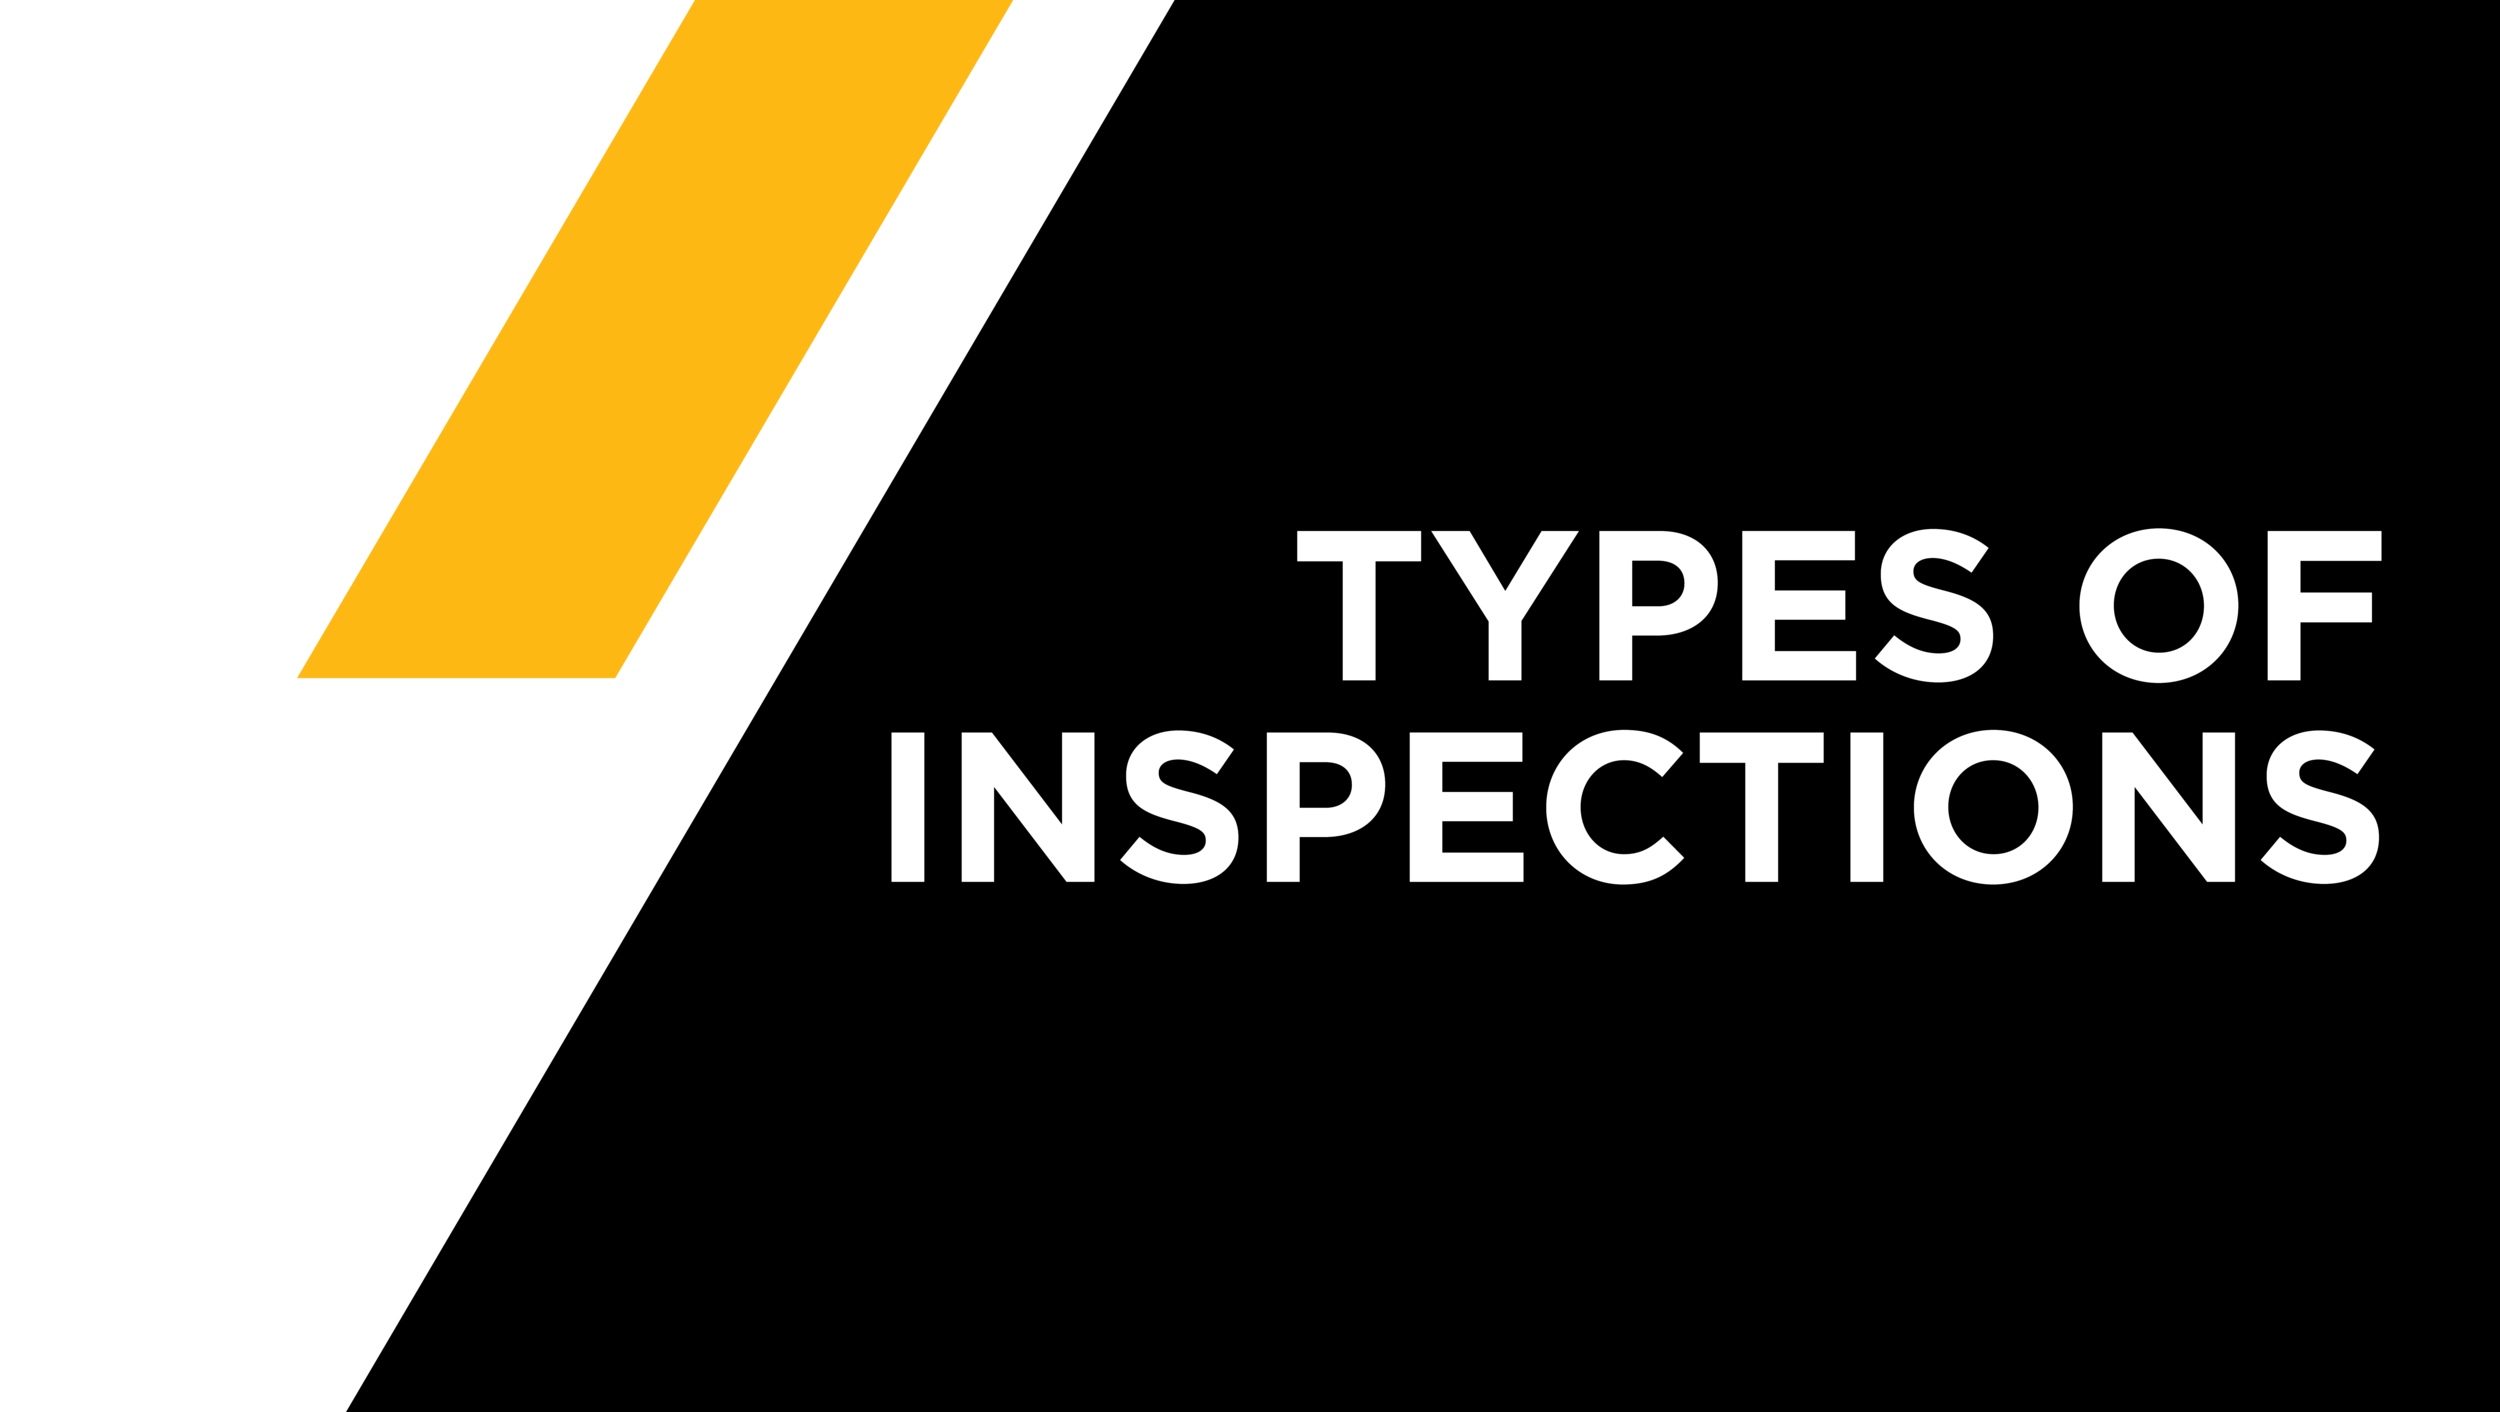 HESCO-types-of-inspection-button-01.png